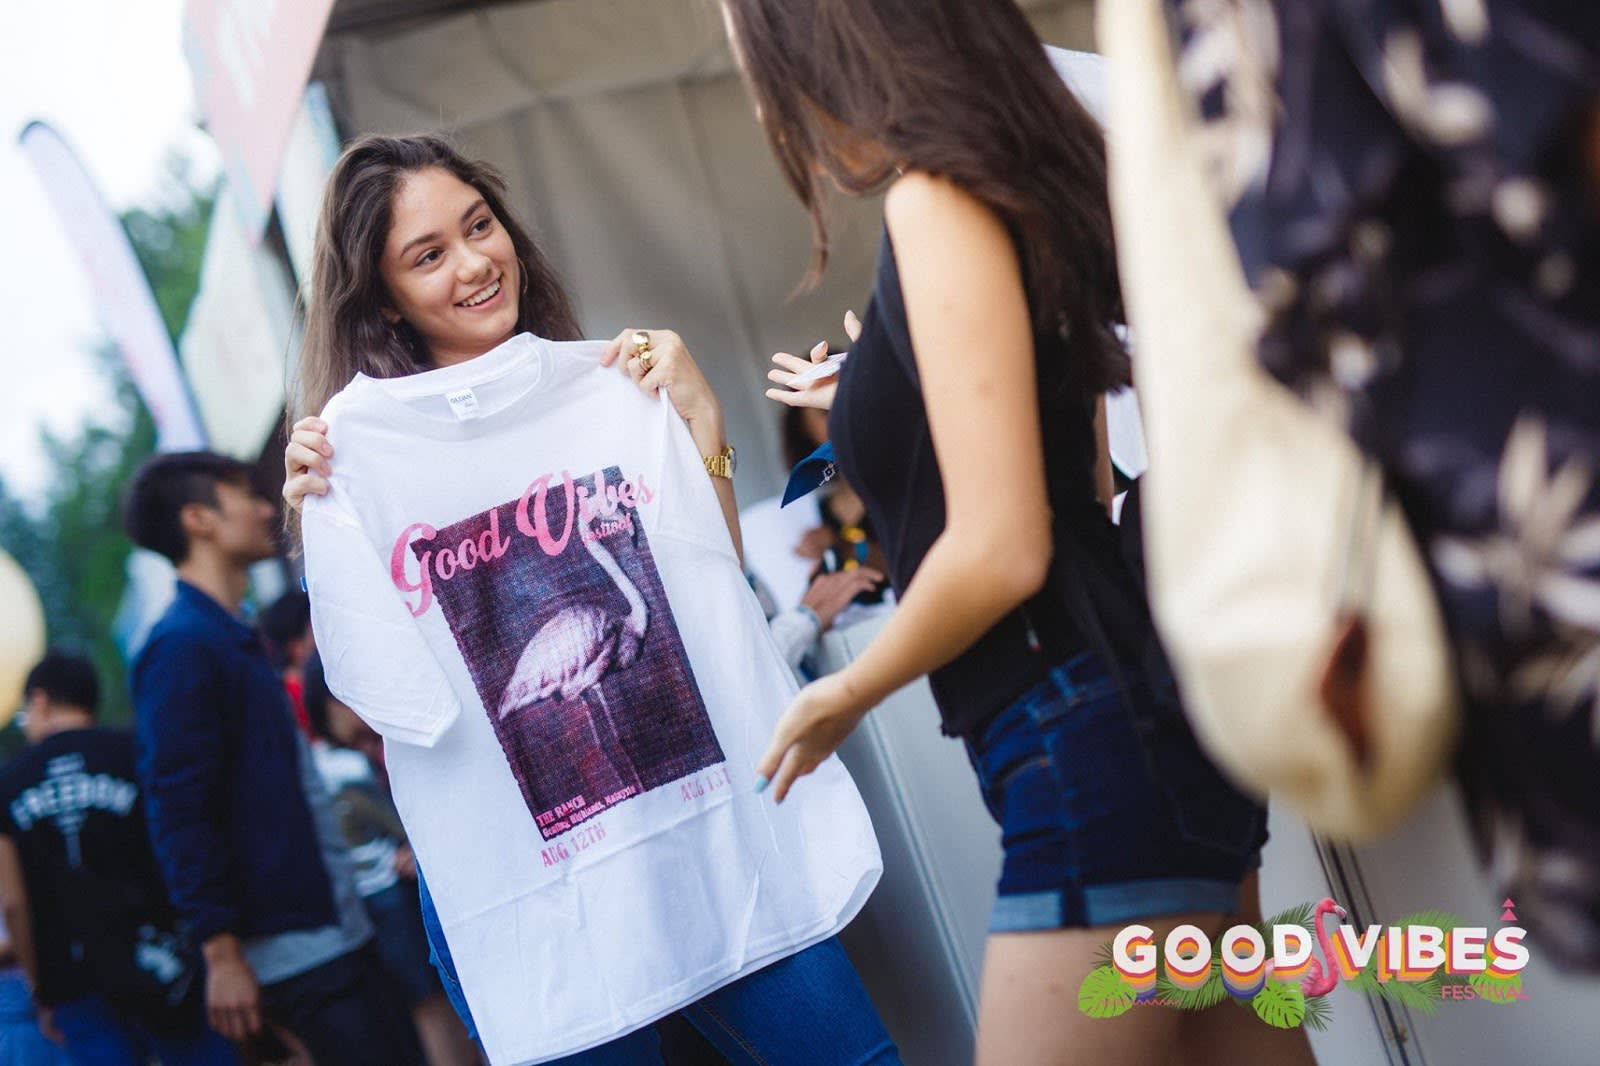 good vibes festival merchandise